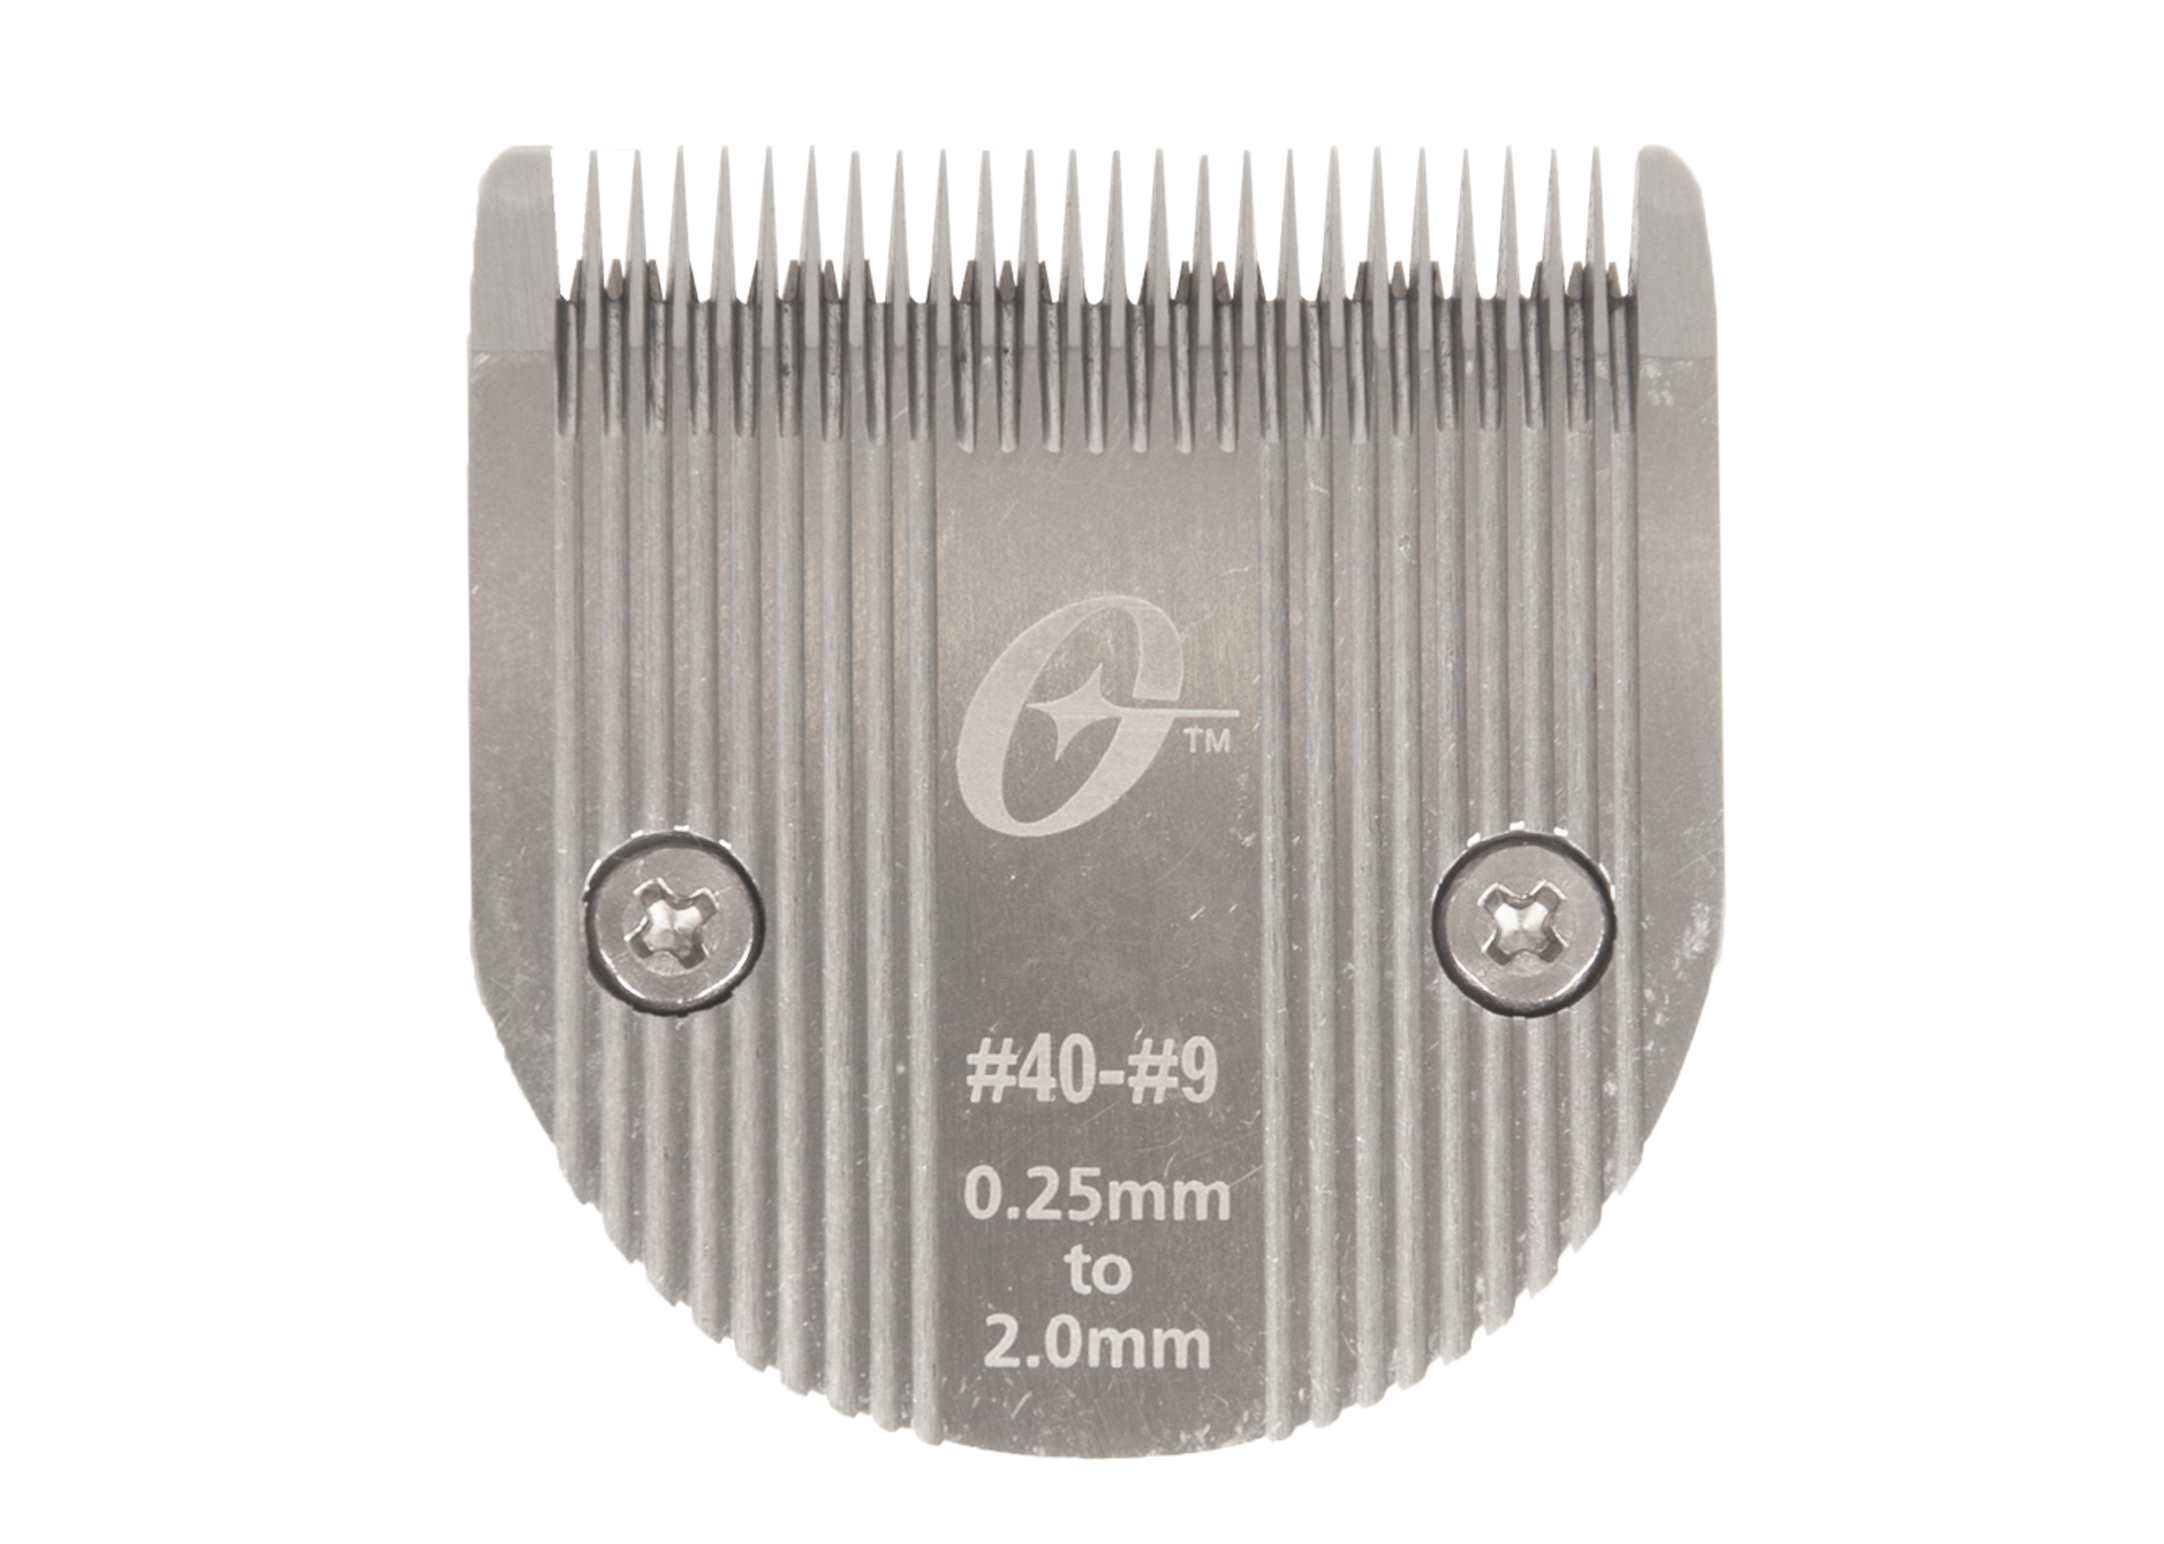 Oster Replacement Blade for Pro 600i Lithium Clipper Blade